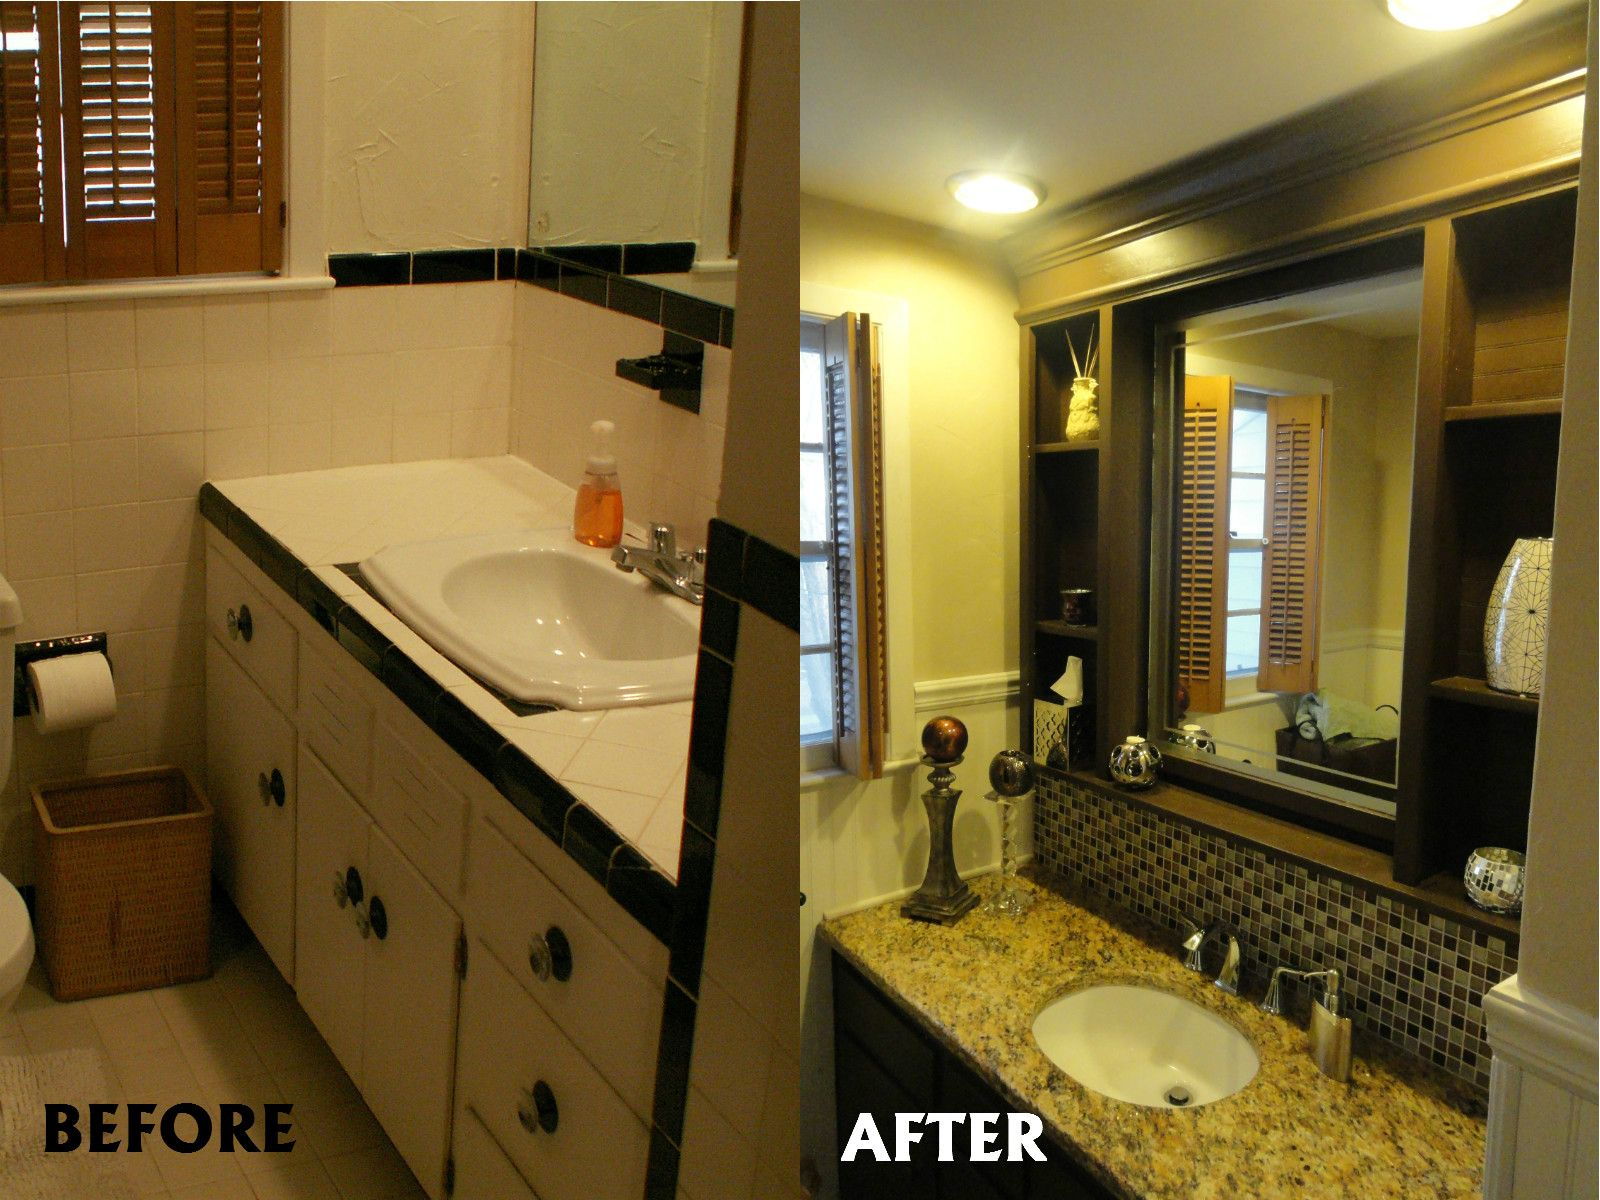 Bathroom Vanity Cabinet Before And After Installed Custom Built In Mirror,  New